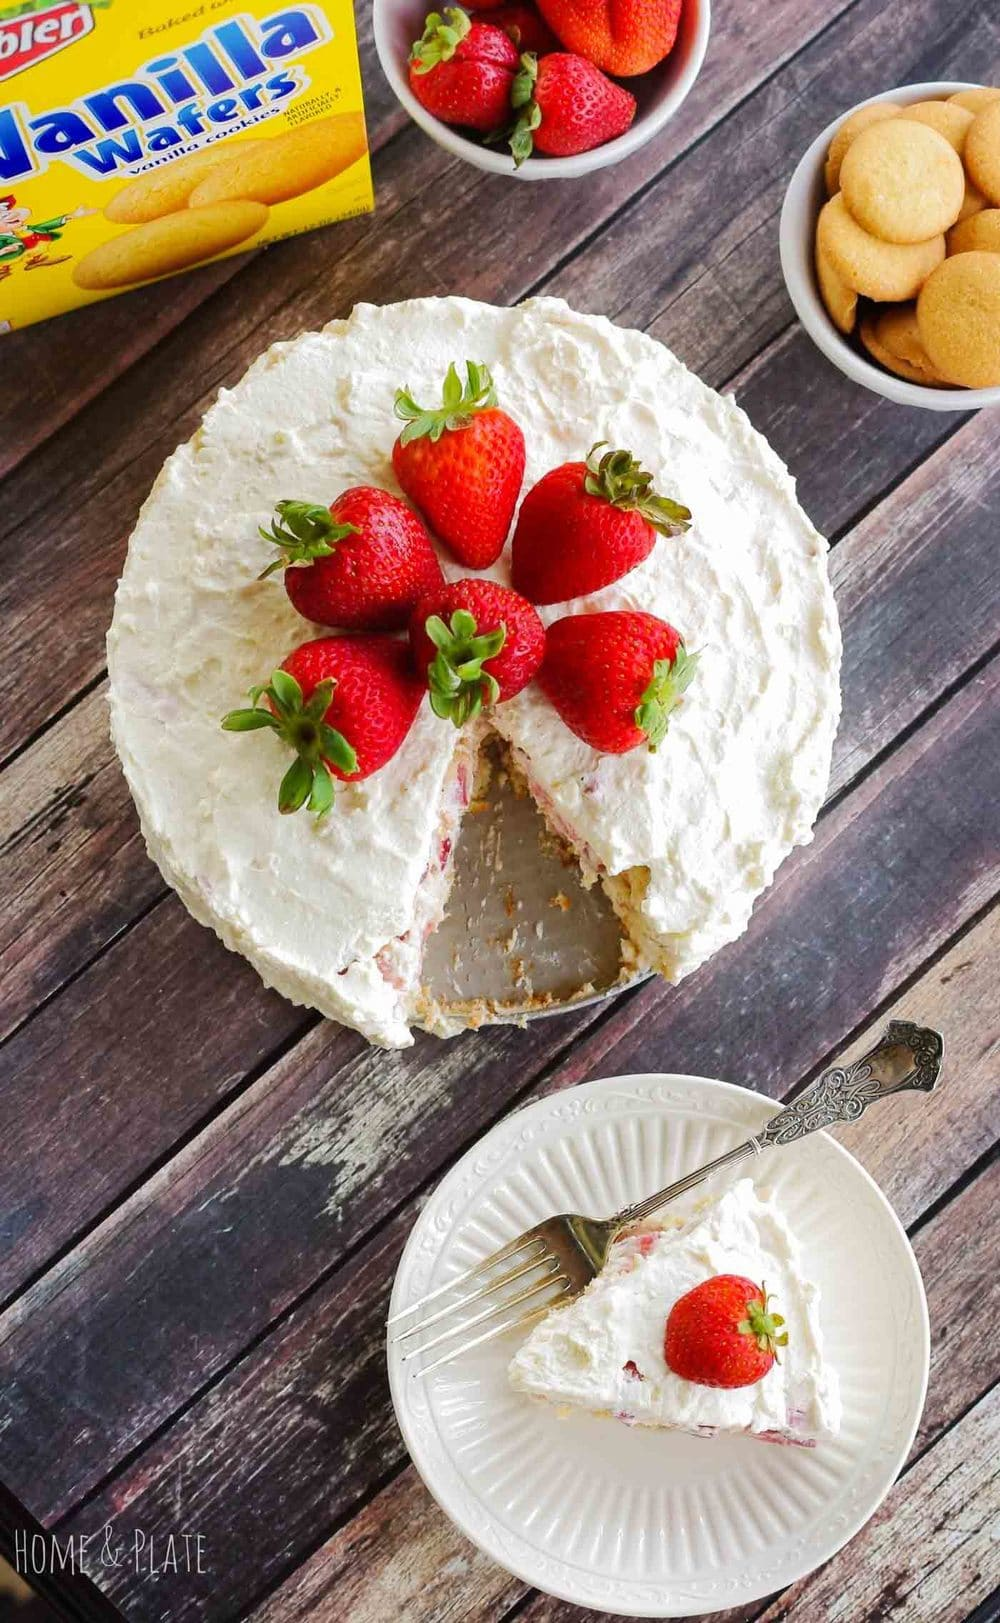 Strawberry Ice Box Cake with Vanilla Wafers | www.homeandplate.com | My Strawberry Ice Box Cake is an ideal way to kick off your summer celebrations. The key ingredient - Keebler Vanilla Wafers.  #BiteSizedBitsOfJoy #ad